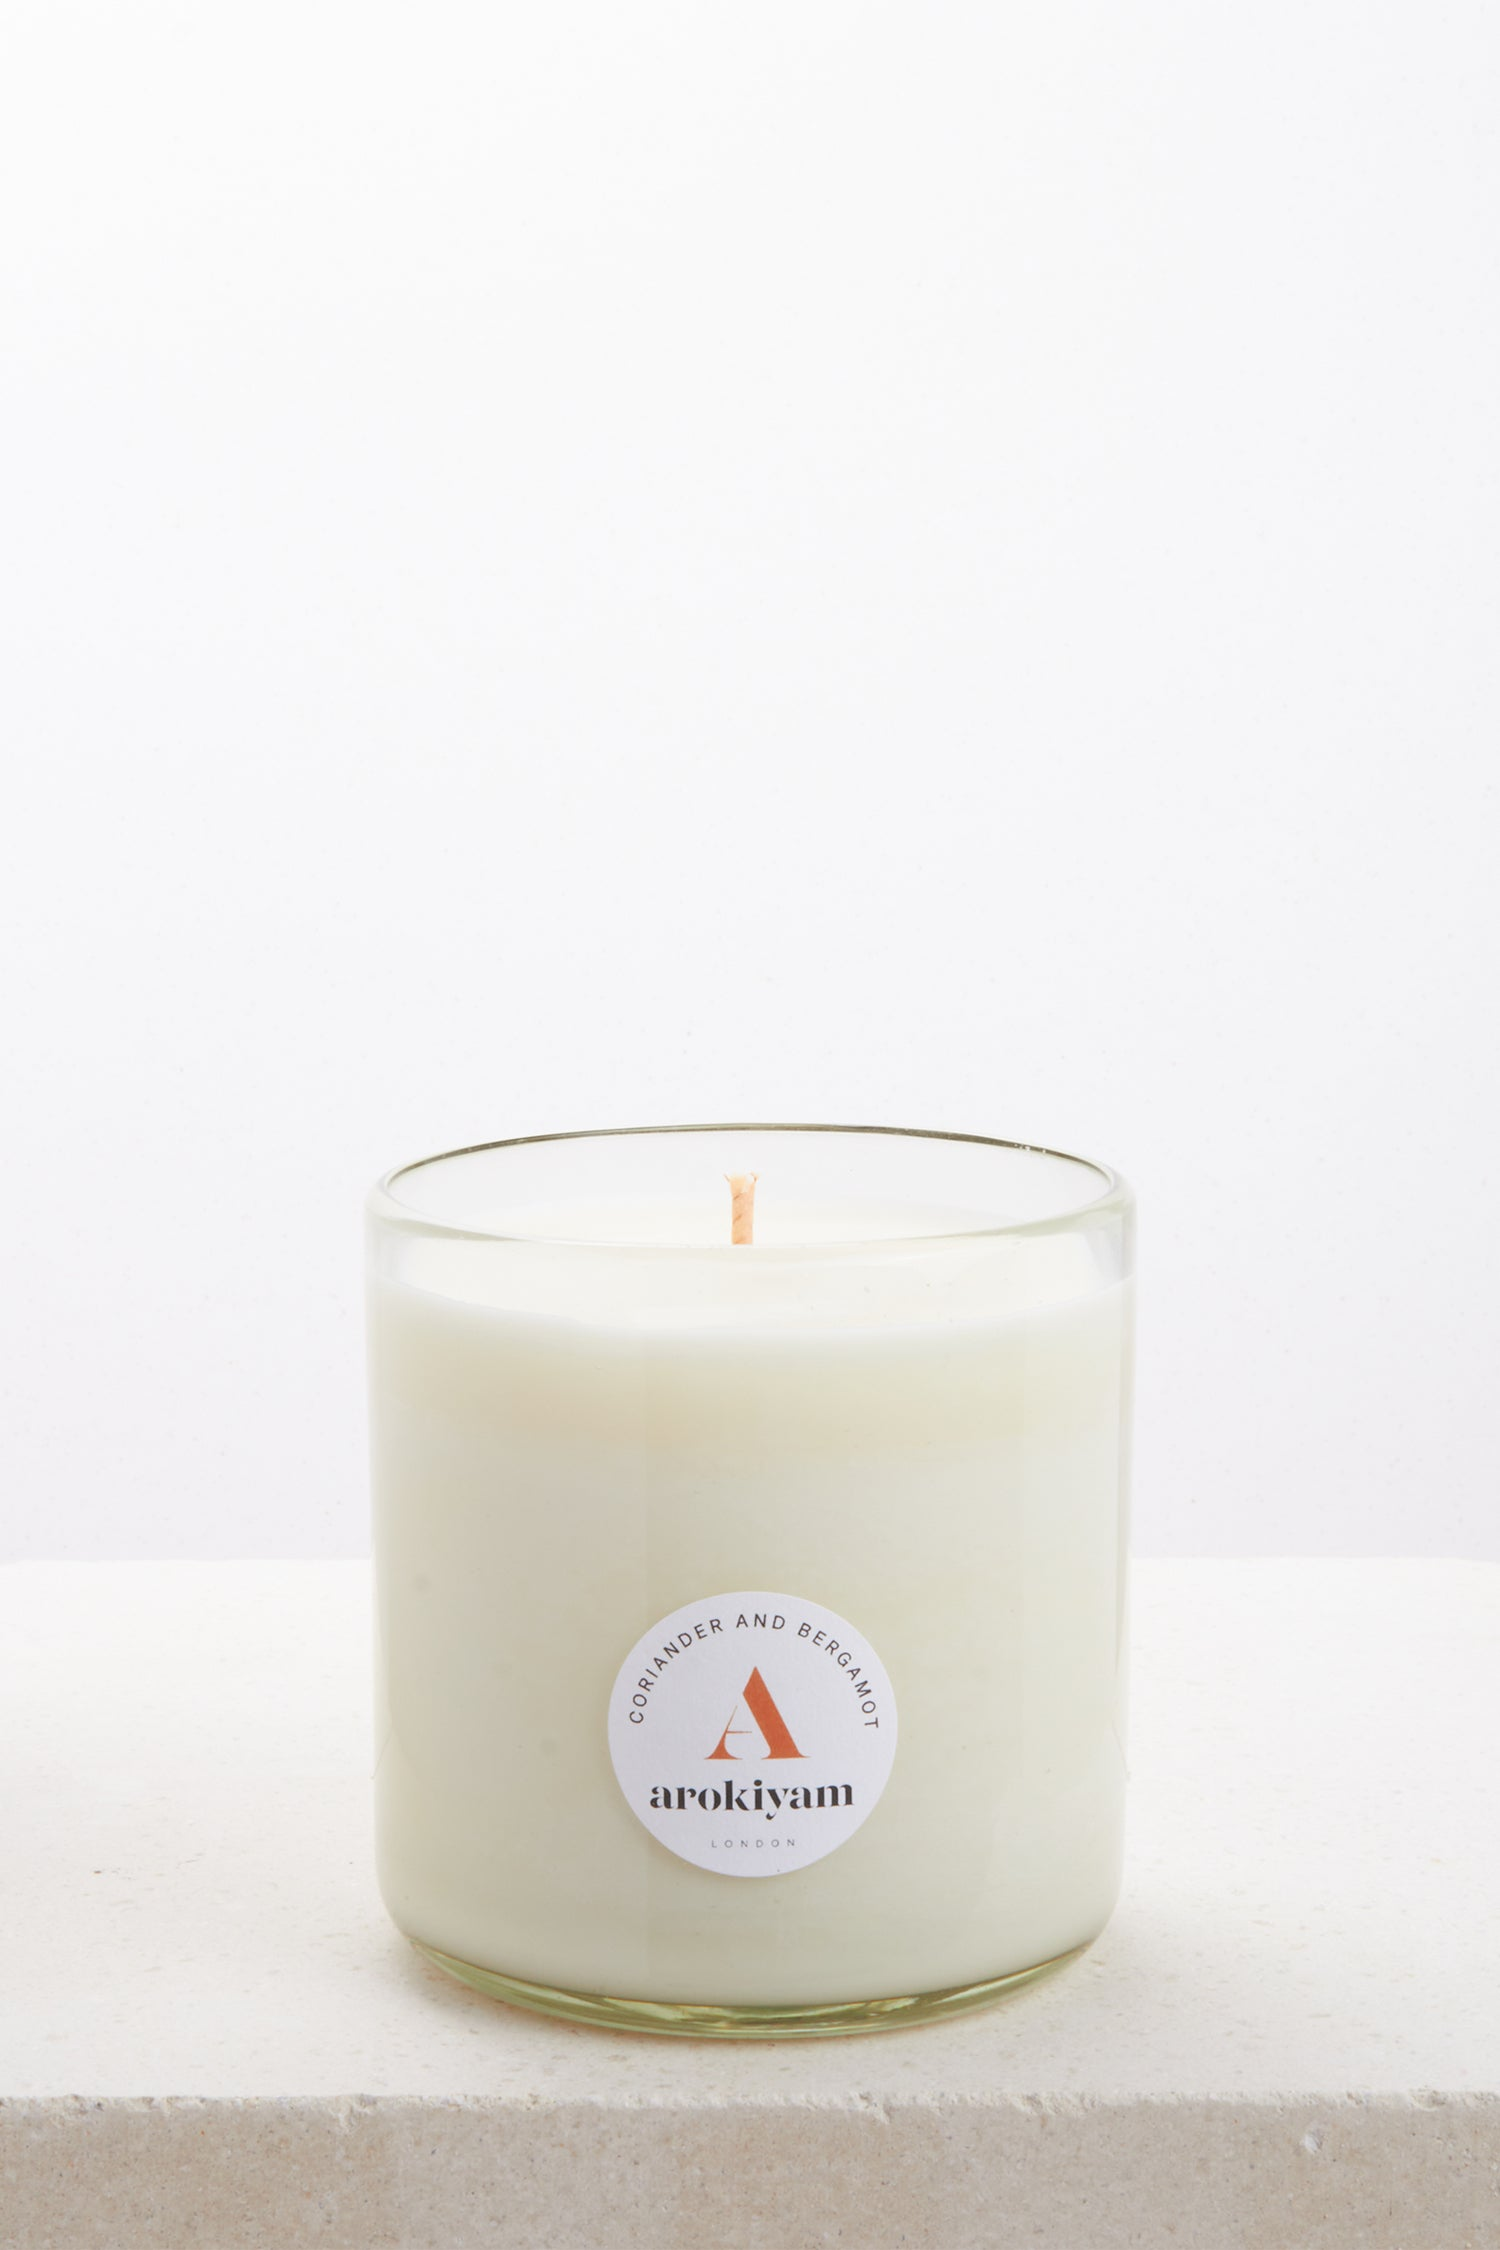 Vegan candle made from a coconut and soy wax and scented with natural coriander and bergamot. Made in London.